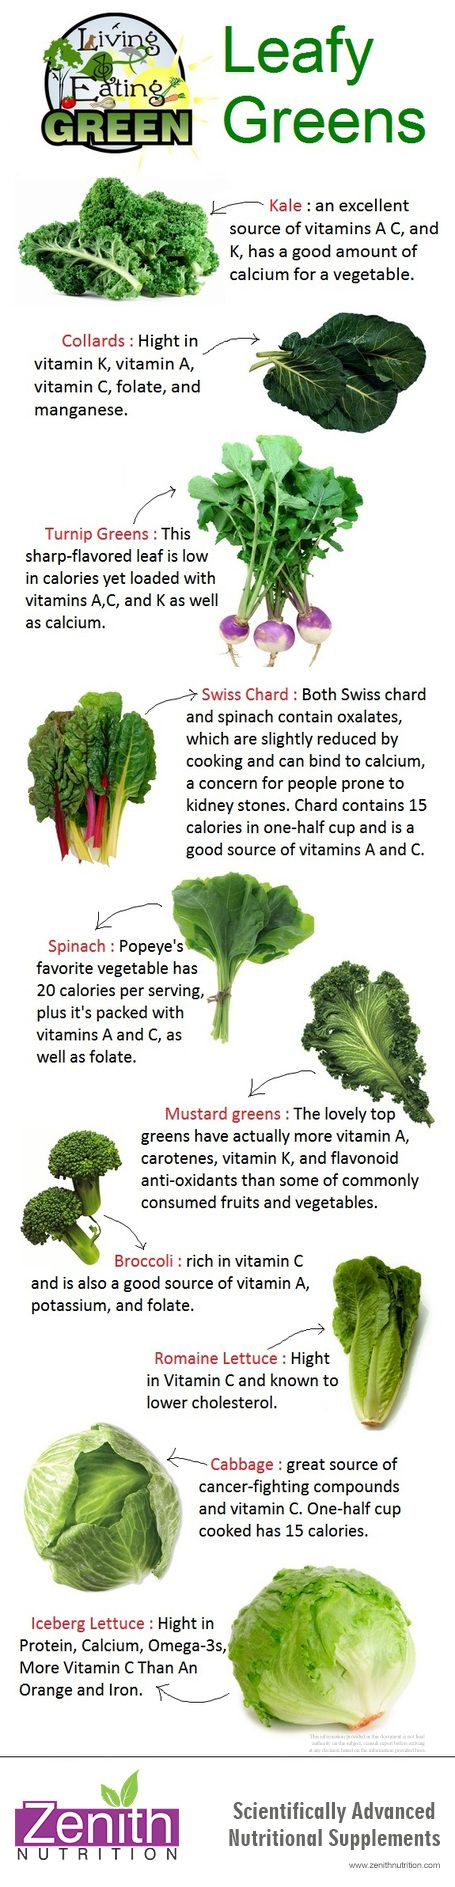 Leafy Greens - Kale, Collards, Turnip greens , Swiss Chard, Spinach, Mustard greens, Broccoli, Romaine, Lettuce, Cabbage, Iceberg lettuce. Best supplements from Zenith Nutrition. Health Supplements. Nutritional Supplements. Health Infographics